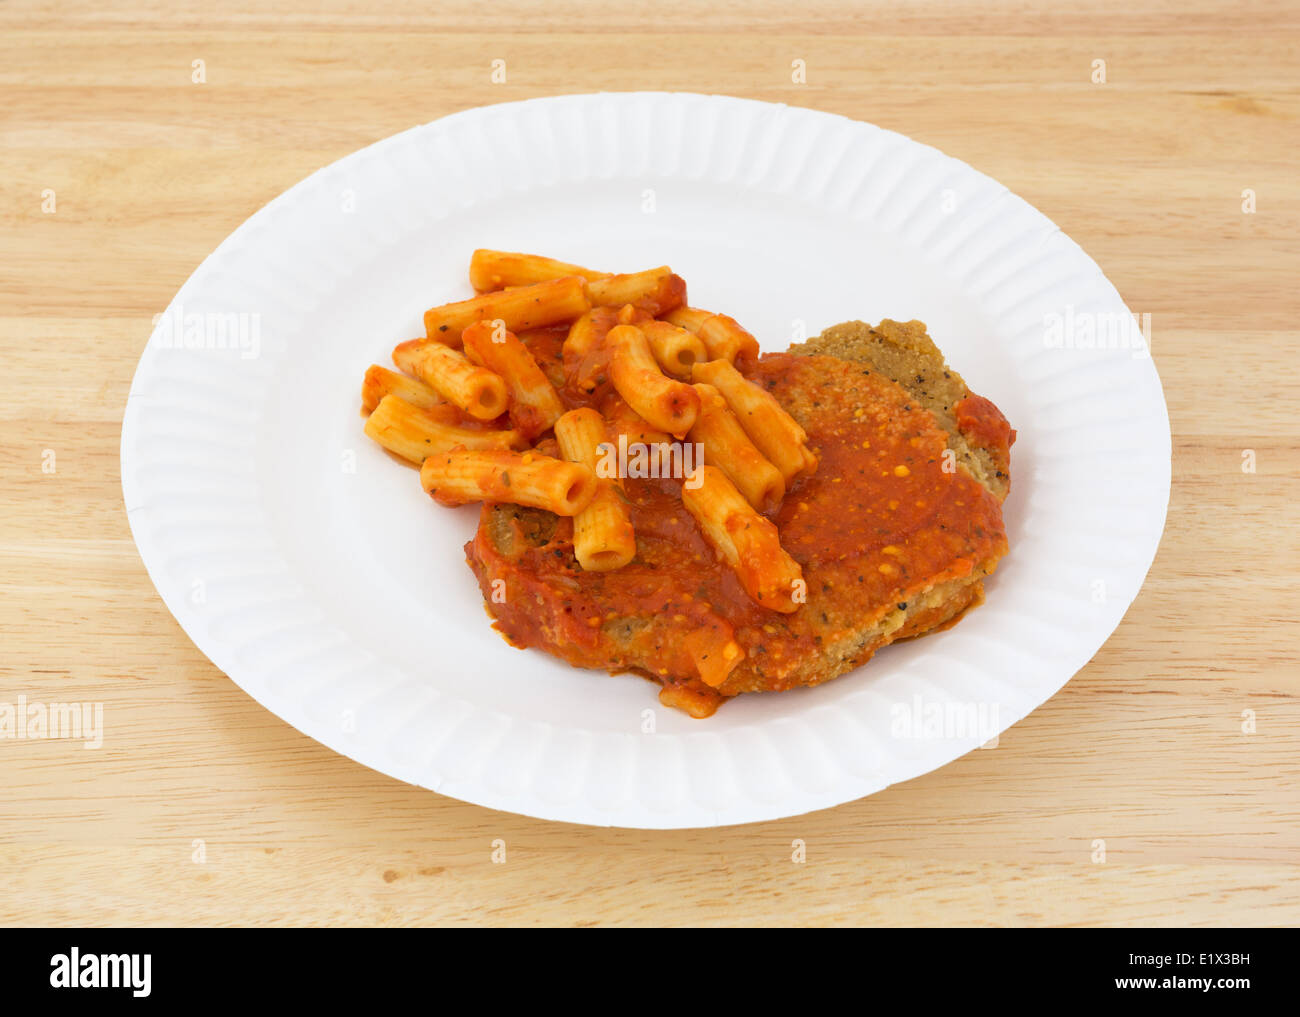 A cooked TV dinner of breaded chicken with tomato sauce and pasta on a paper plate atop a wood tabletop. - Stock Image